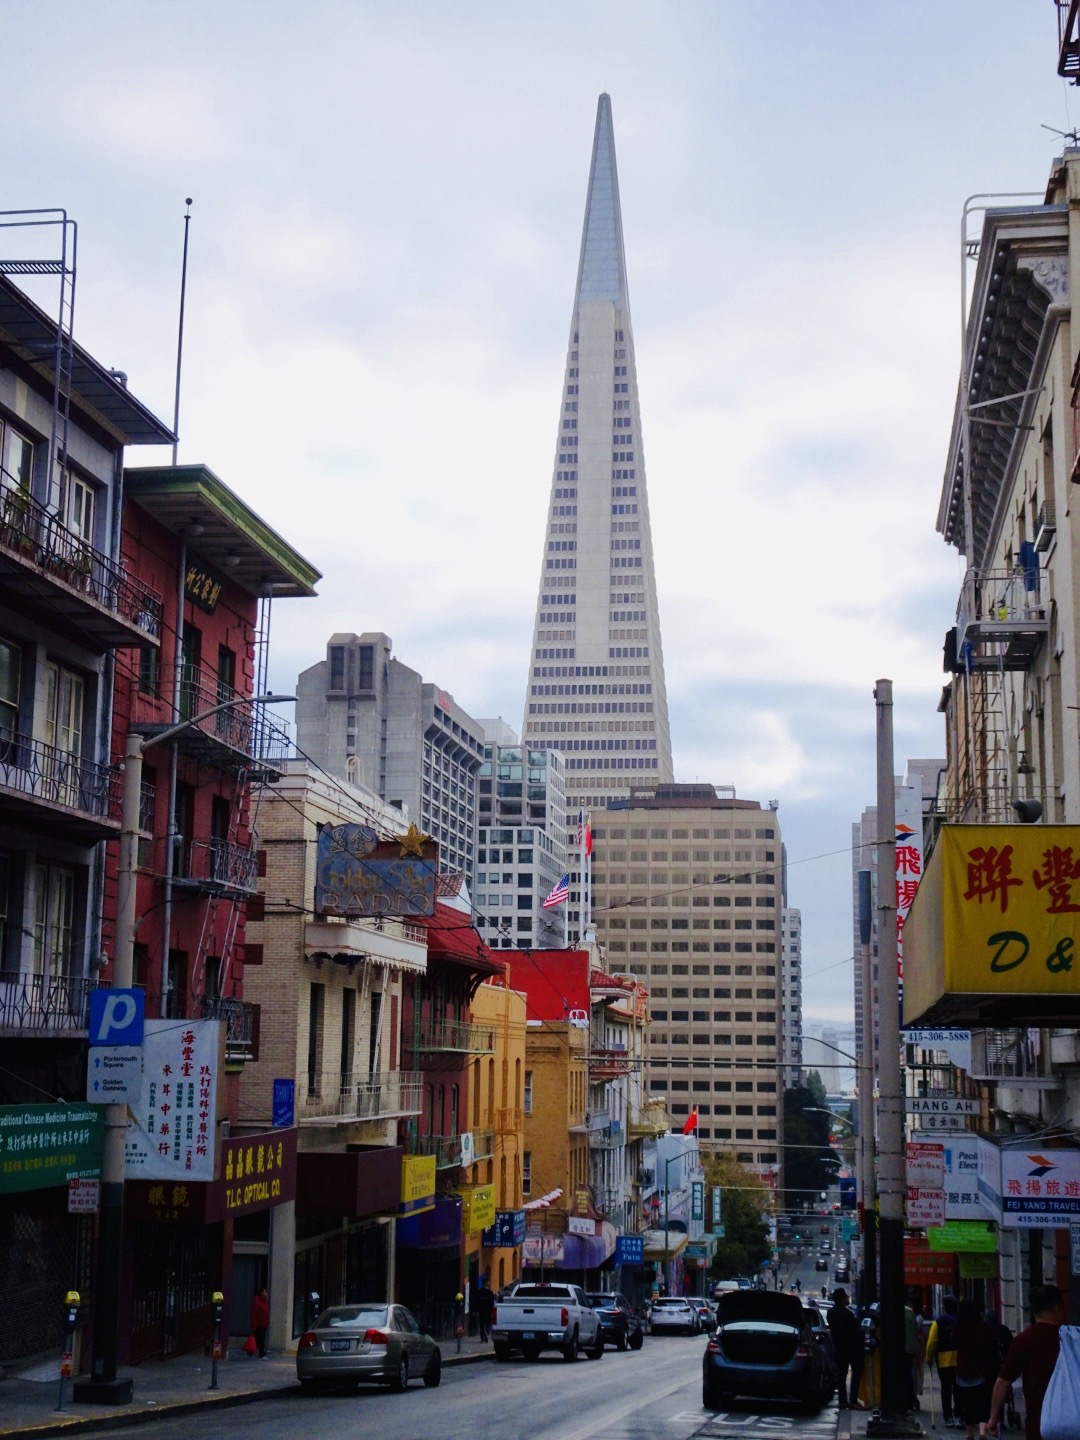 Transamerica Pyramid view from Chinatown San Francisco